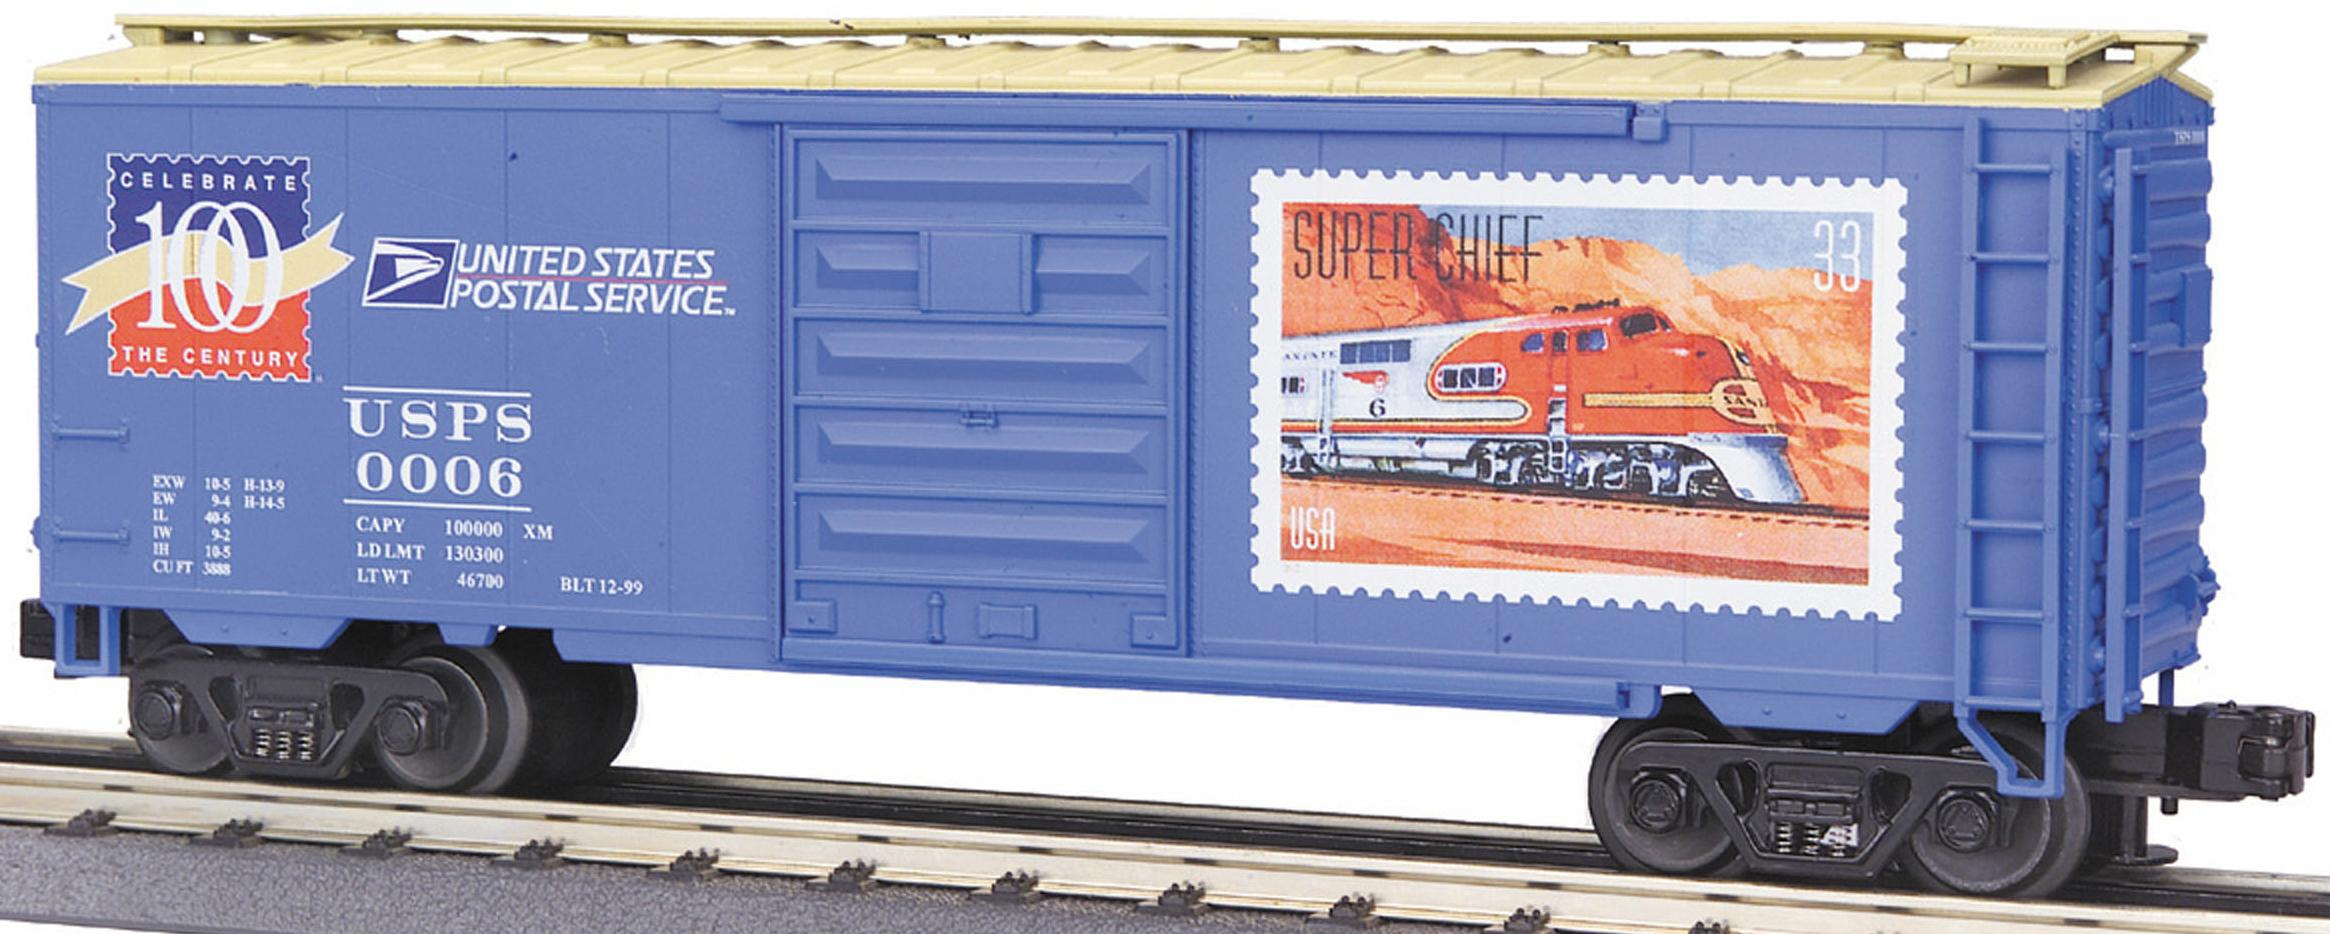 USPS Century Series #4 40' Single Door Box Car image